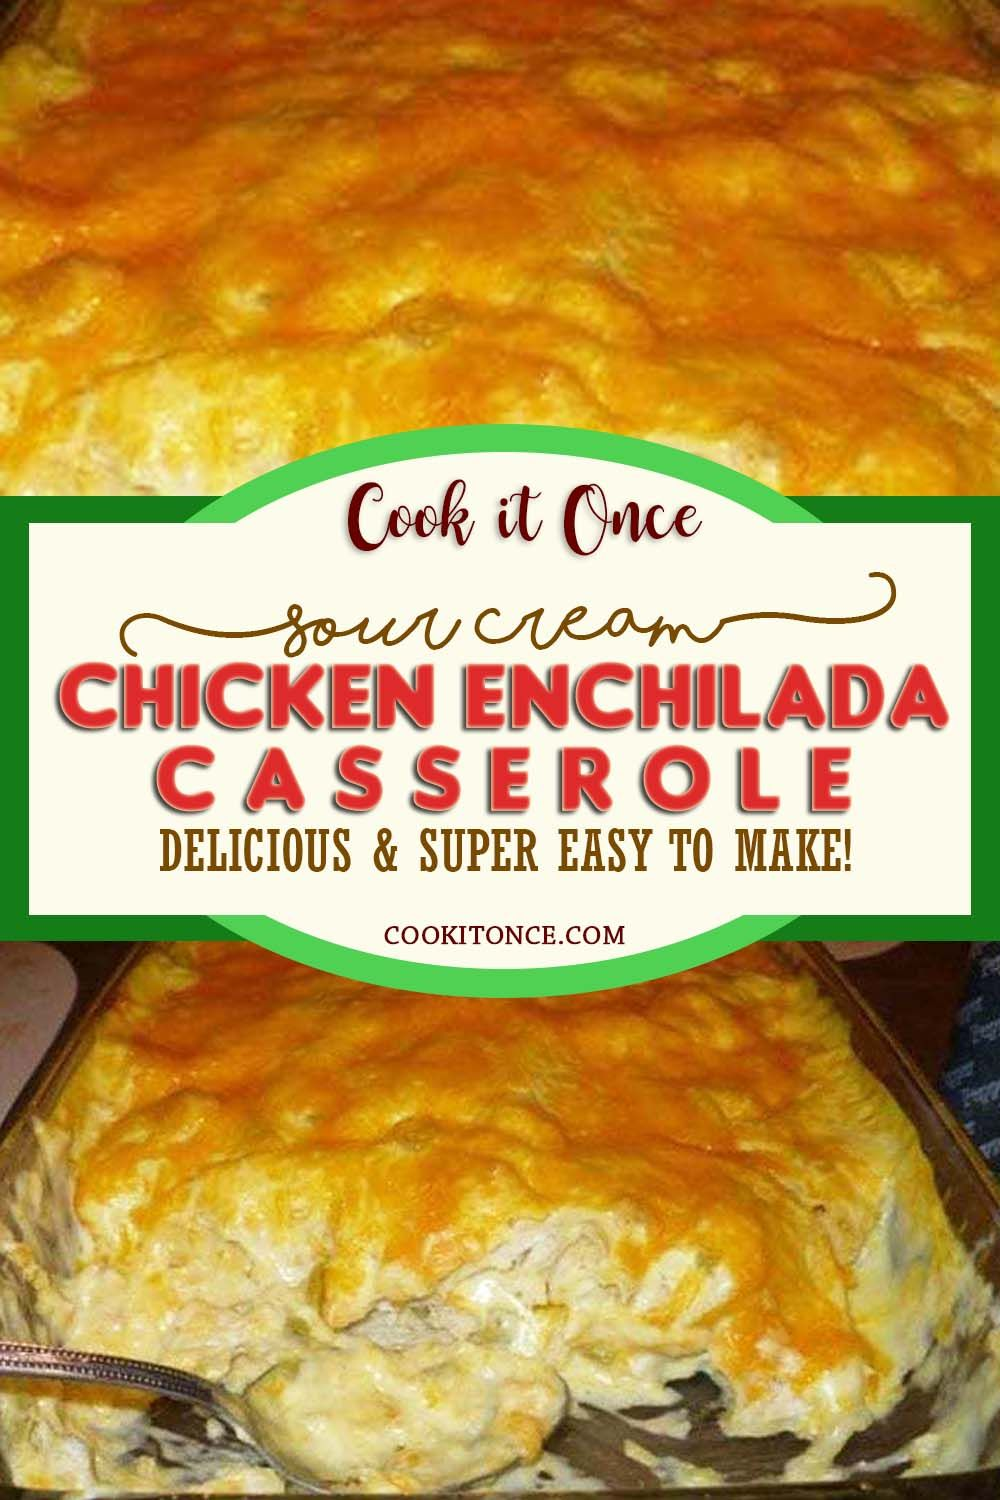 Sour Cream Chicken Enchilada Casserole Is Delicious And Super Easy To Make Recipe In 2020 Sour Cream Chicken Chicken Enchilada Casserole Recipes